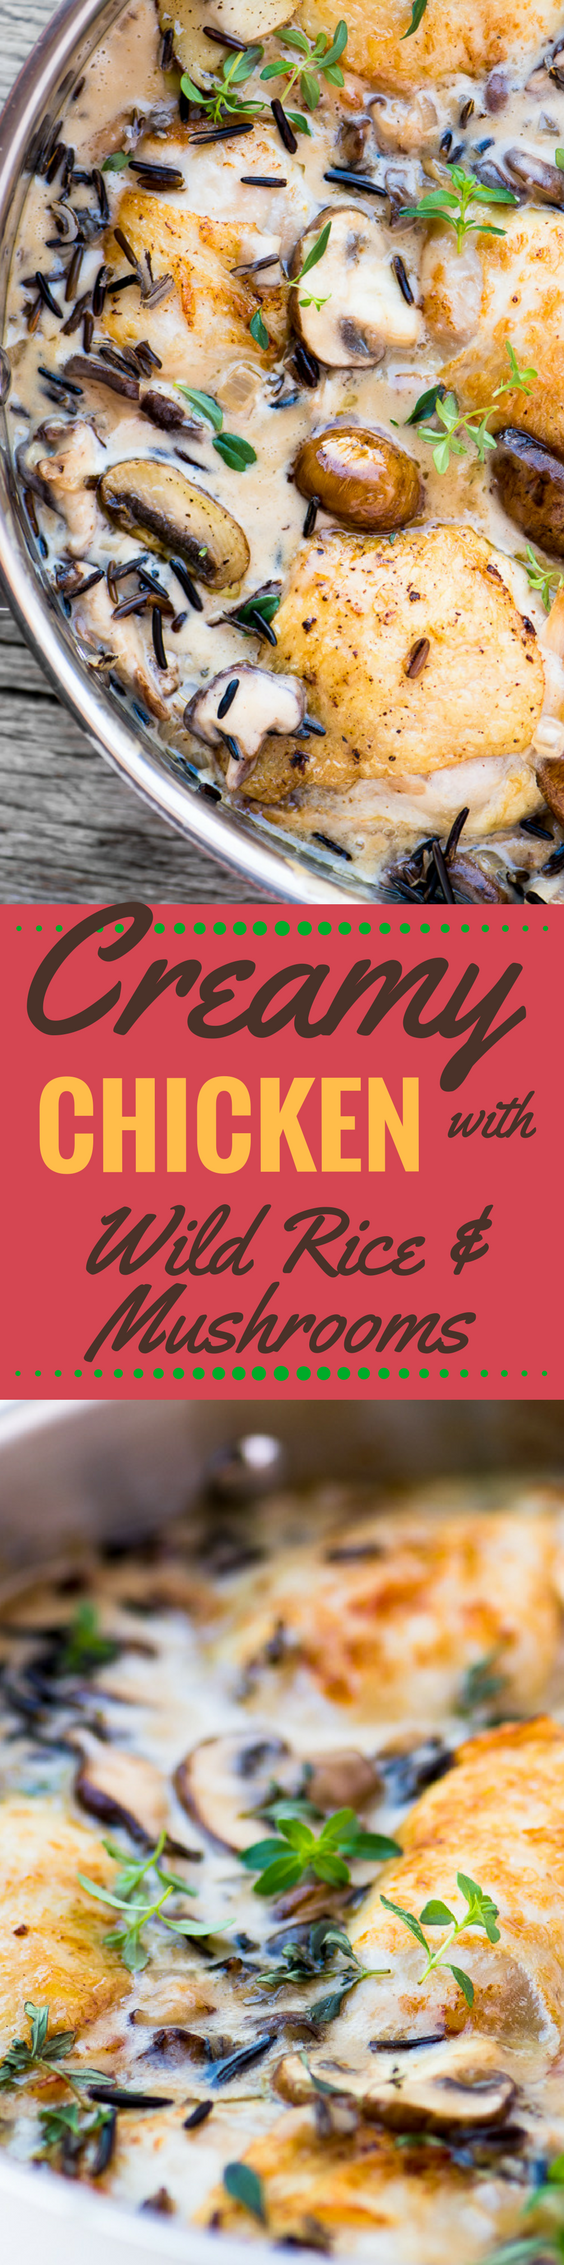 Creamy Chicken with Wild Rice and Mushrooms ~ this earthy, stick-to-your-ribs skillet dinner is ideal for a chilly fall night! #chicken #bestchickenthighrecipe #chickenthighrecipe #comfortfood #fall #wildrice #mushrooms #easychickenrecipe #deliciouschicken #dinner #creamofmushroom